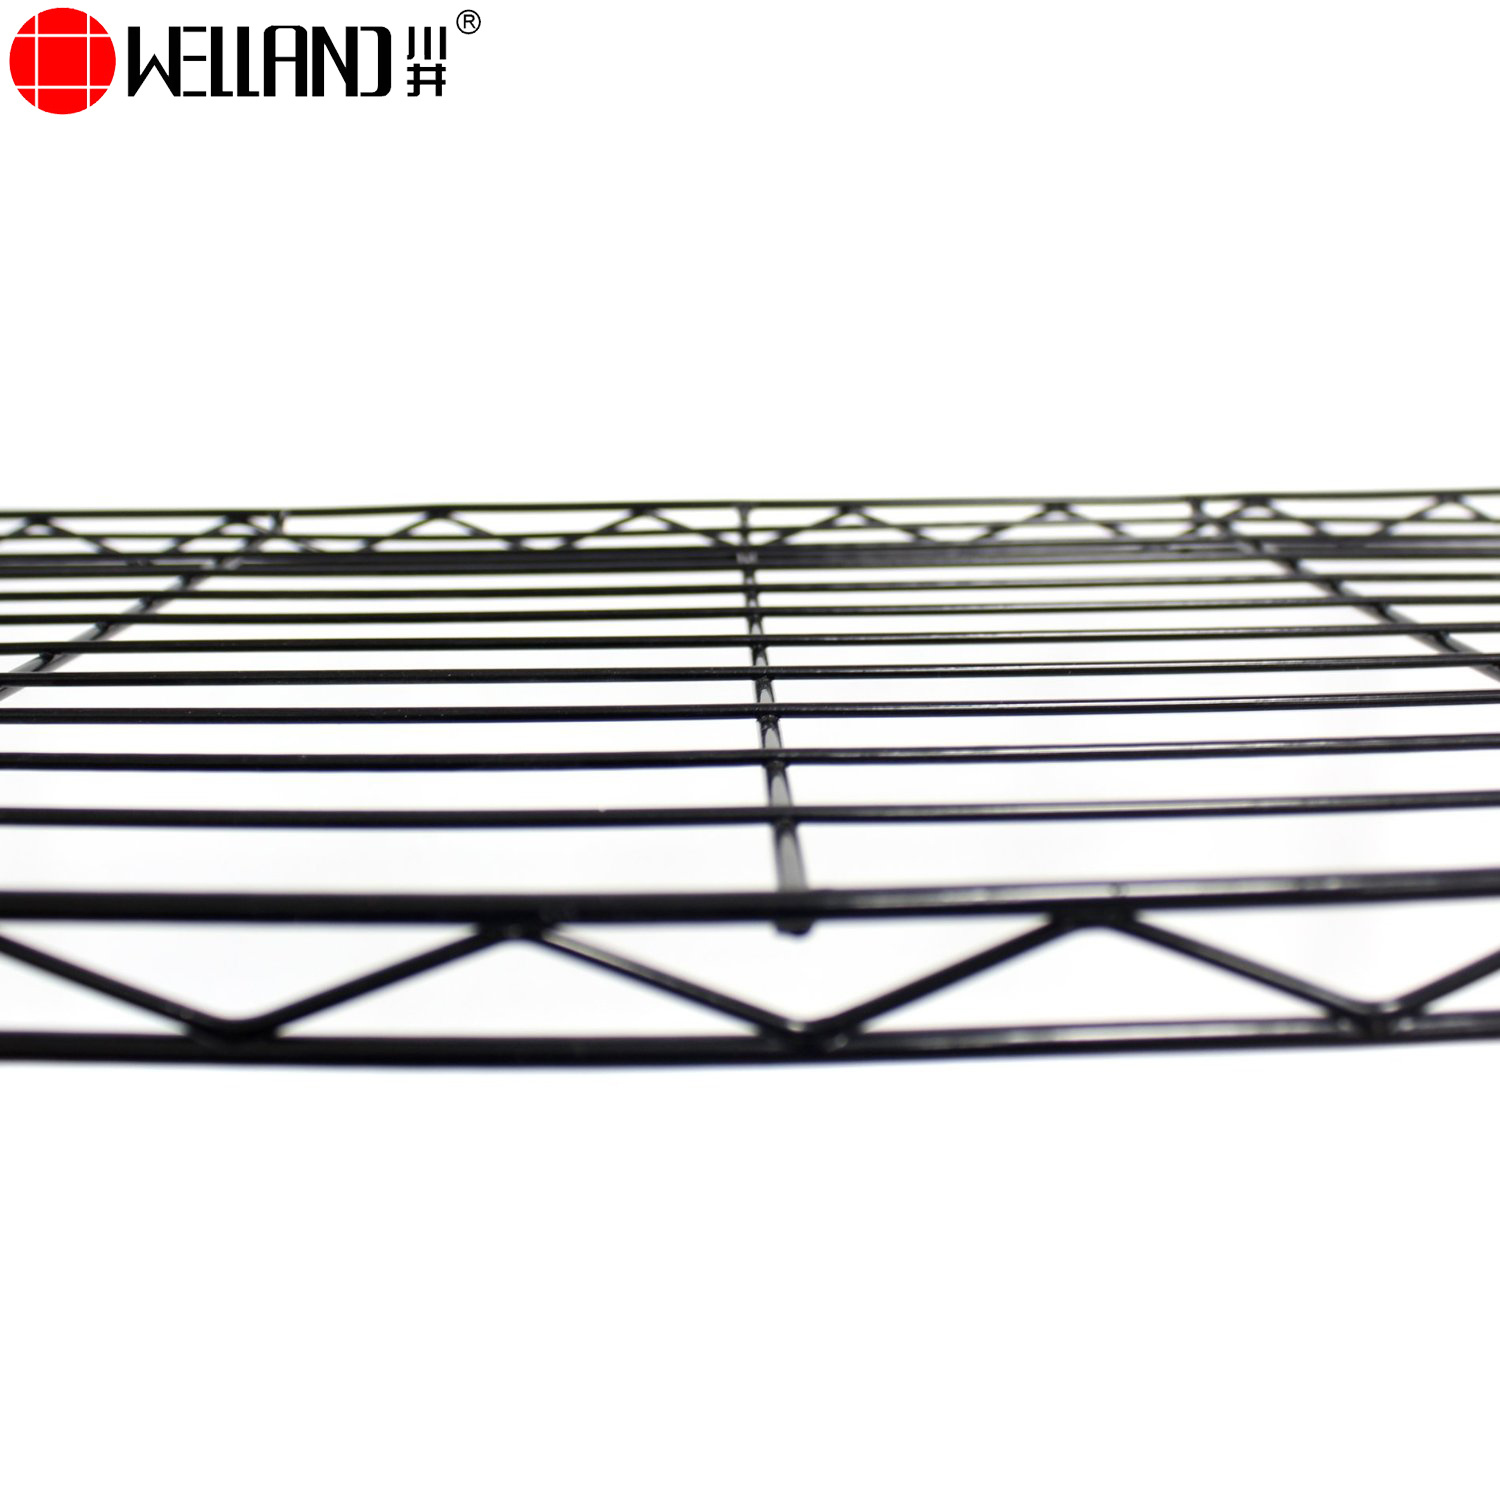 China Rolling 3 Tiers Wire Clothing Shelving Heavy Duty Home Grade ...